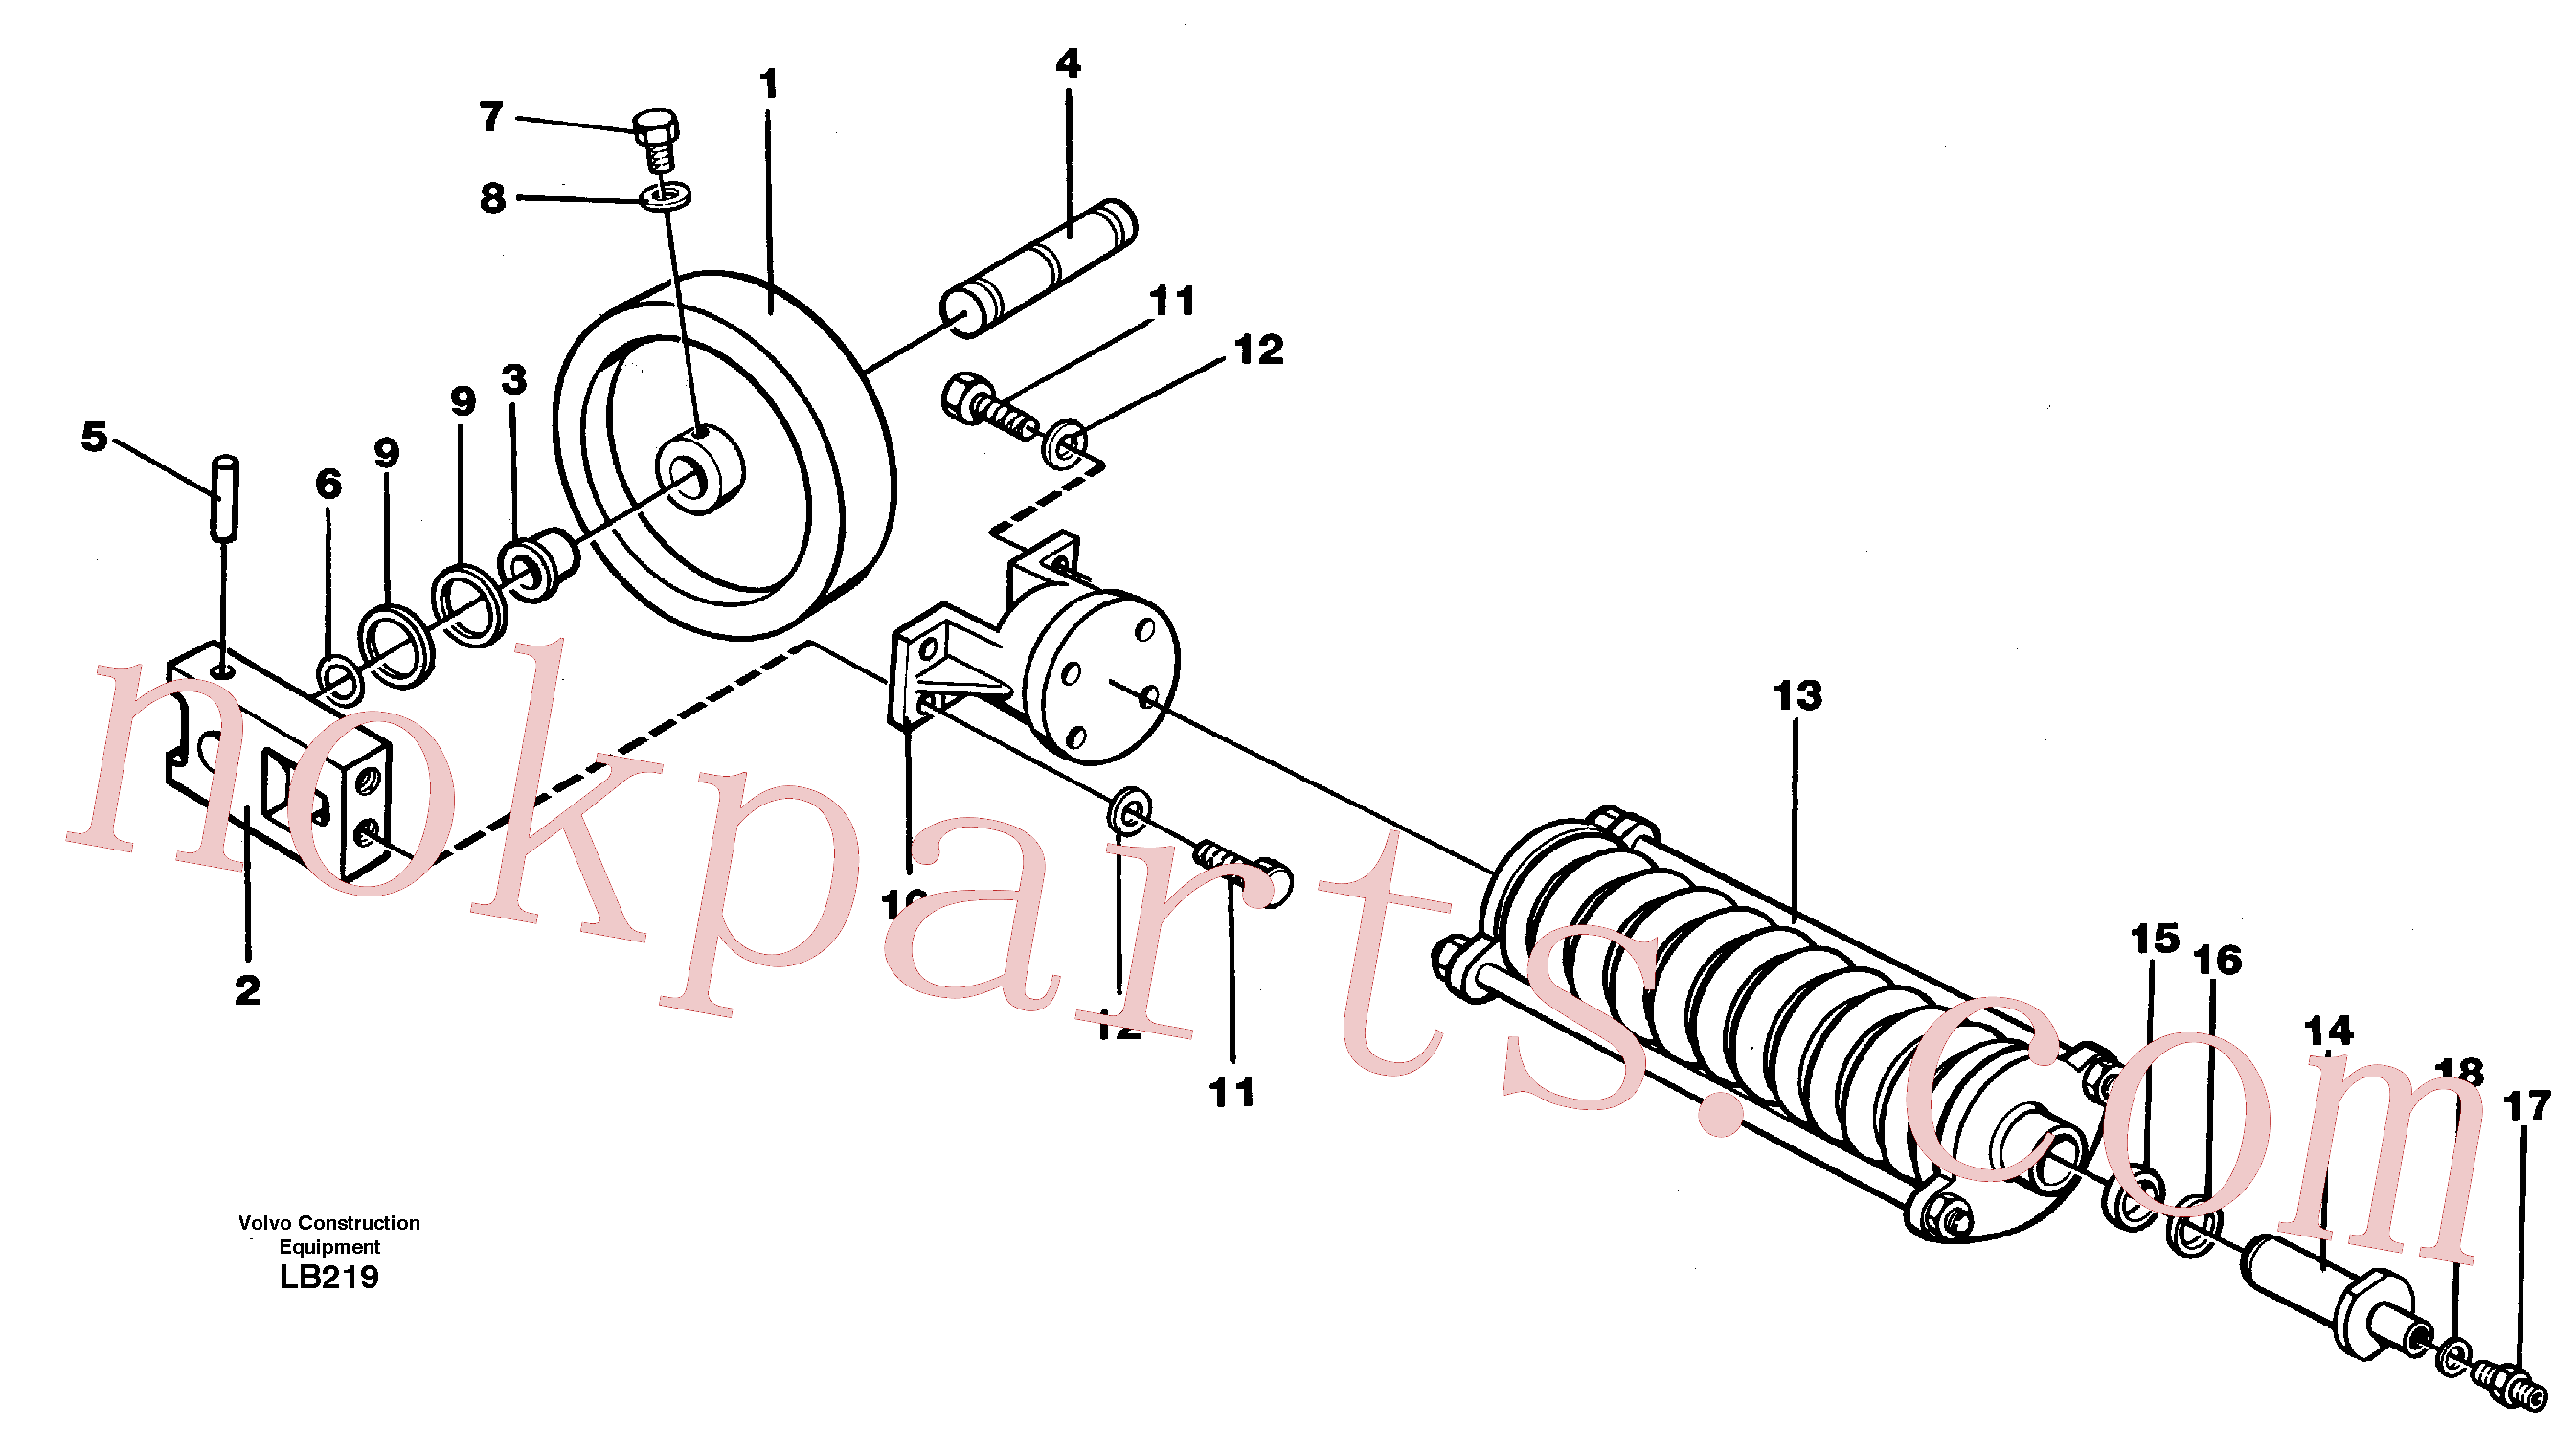 PJ5600007 for Volvo Front wheel, spring package and tension cylinder(LB219 assembly)